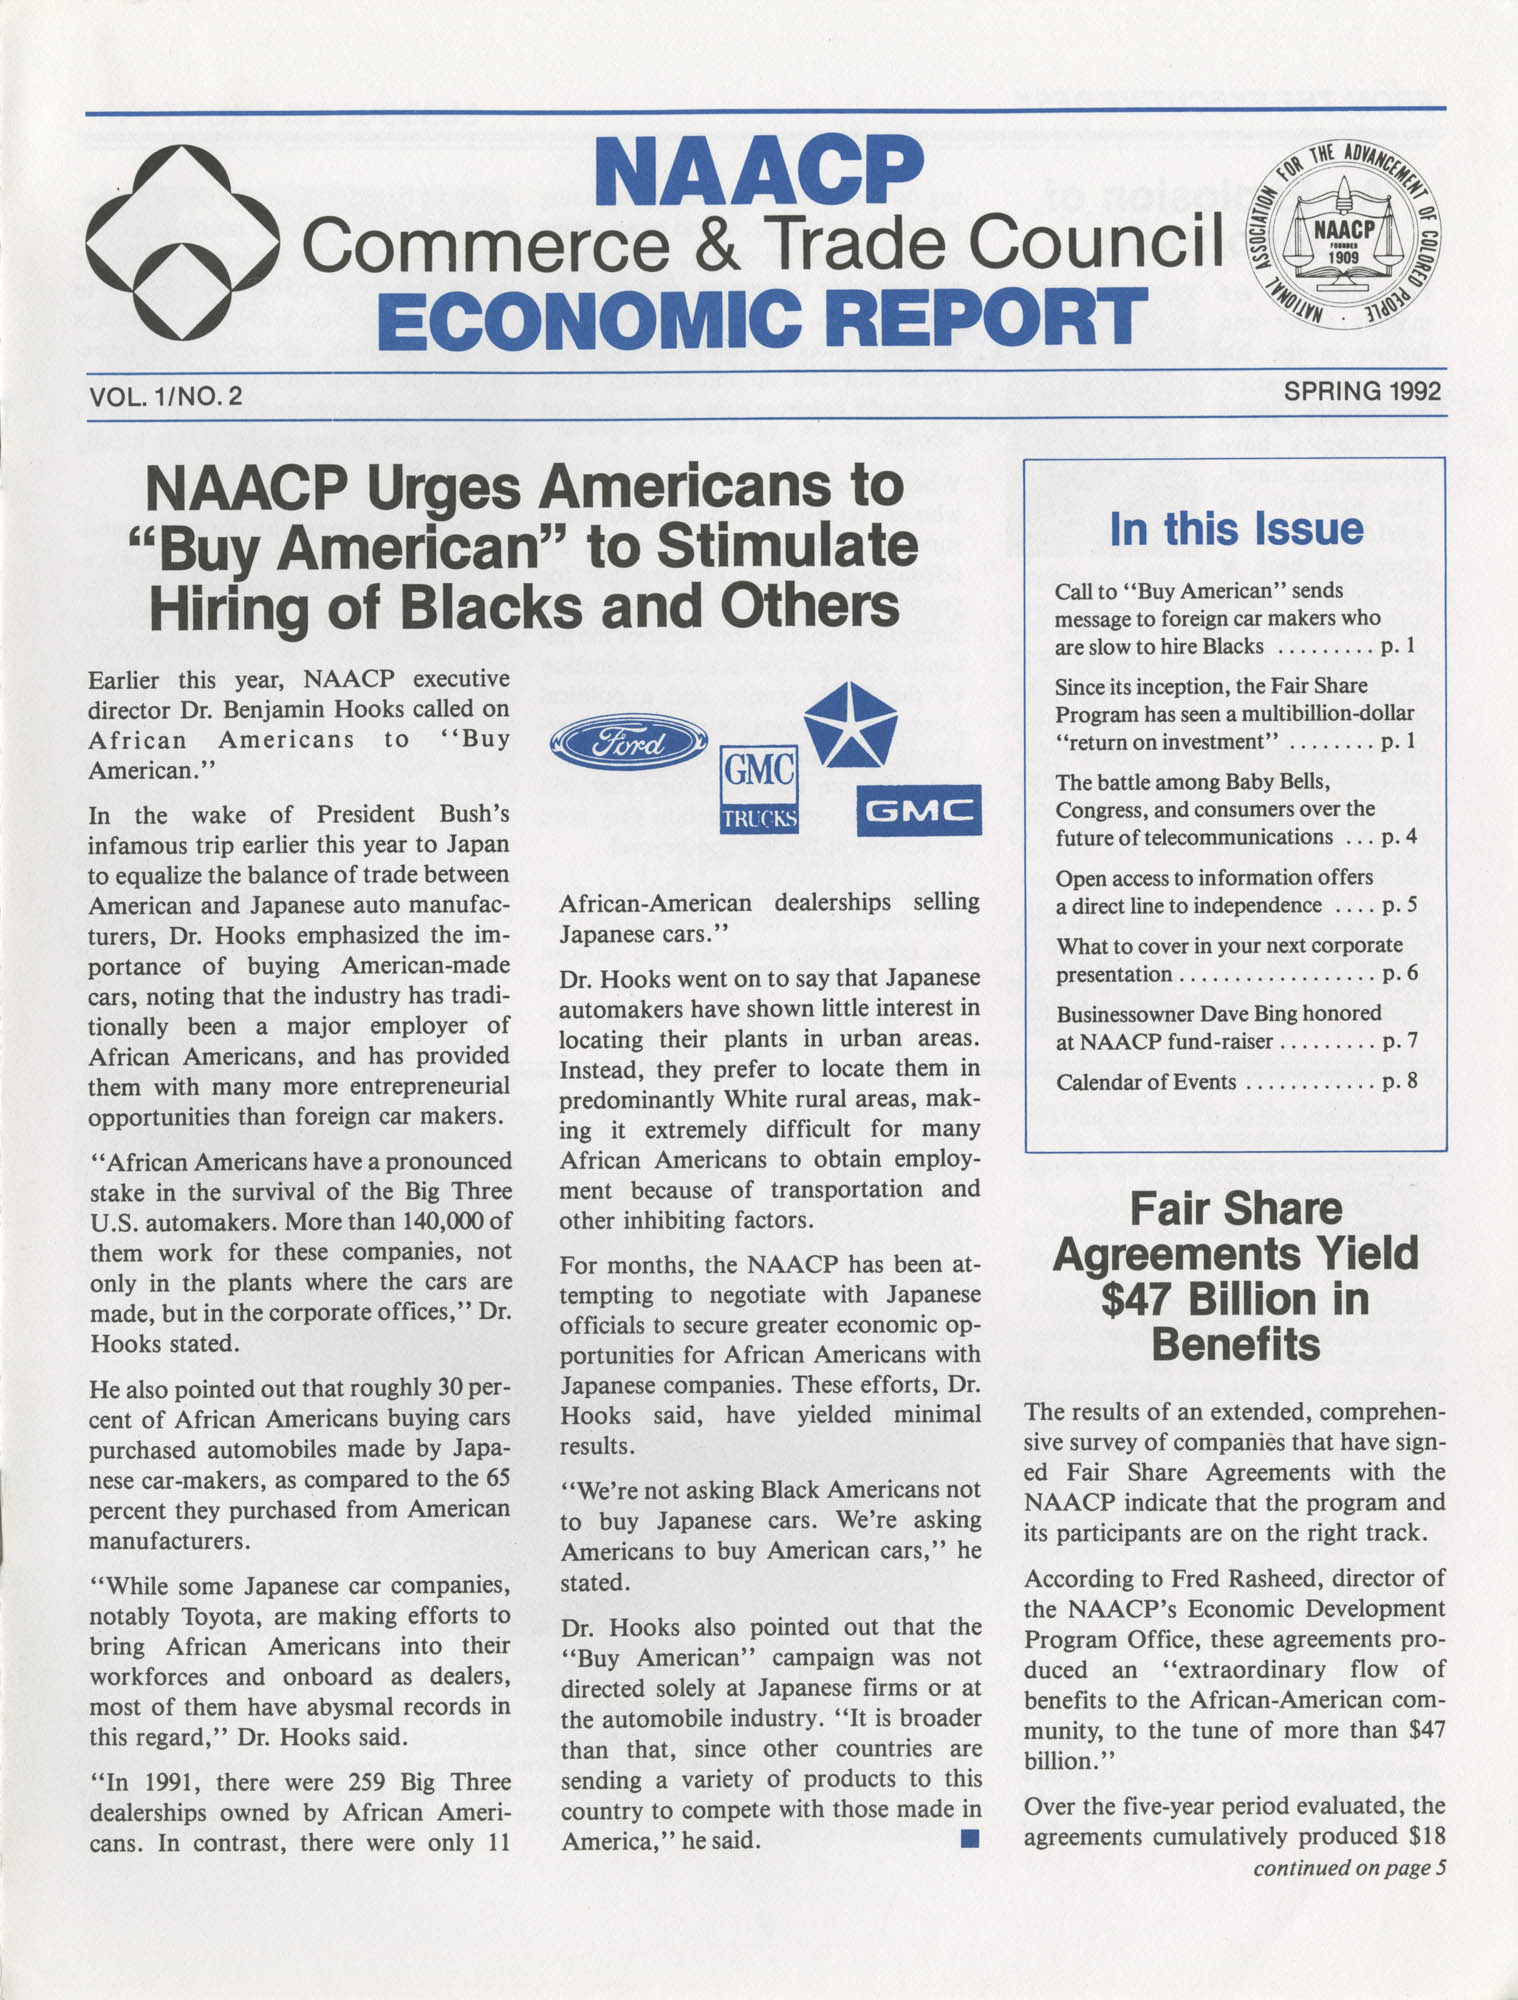 NAACP Commerce and Trade Council Economic Report, Vol. 1, No. 2, Spring 1992, Page 1